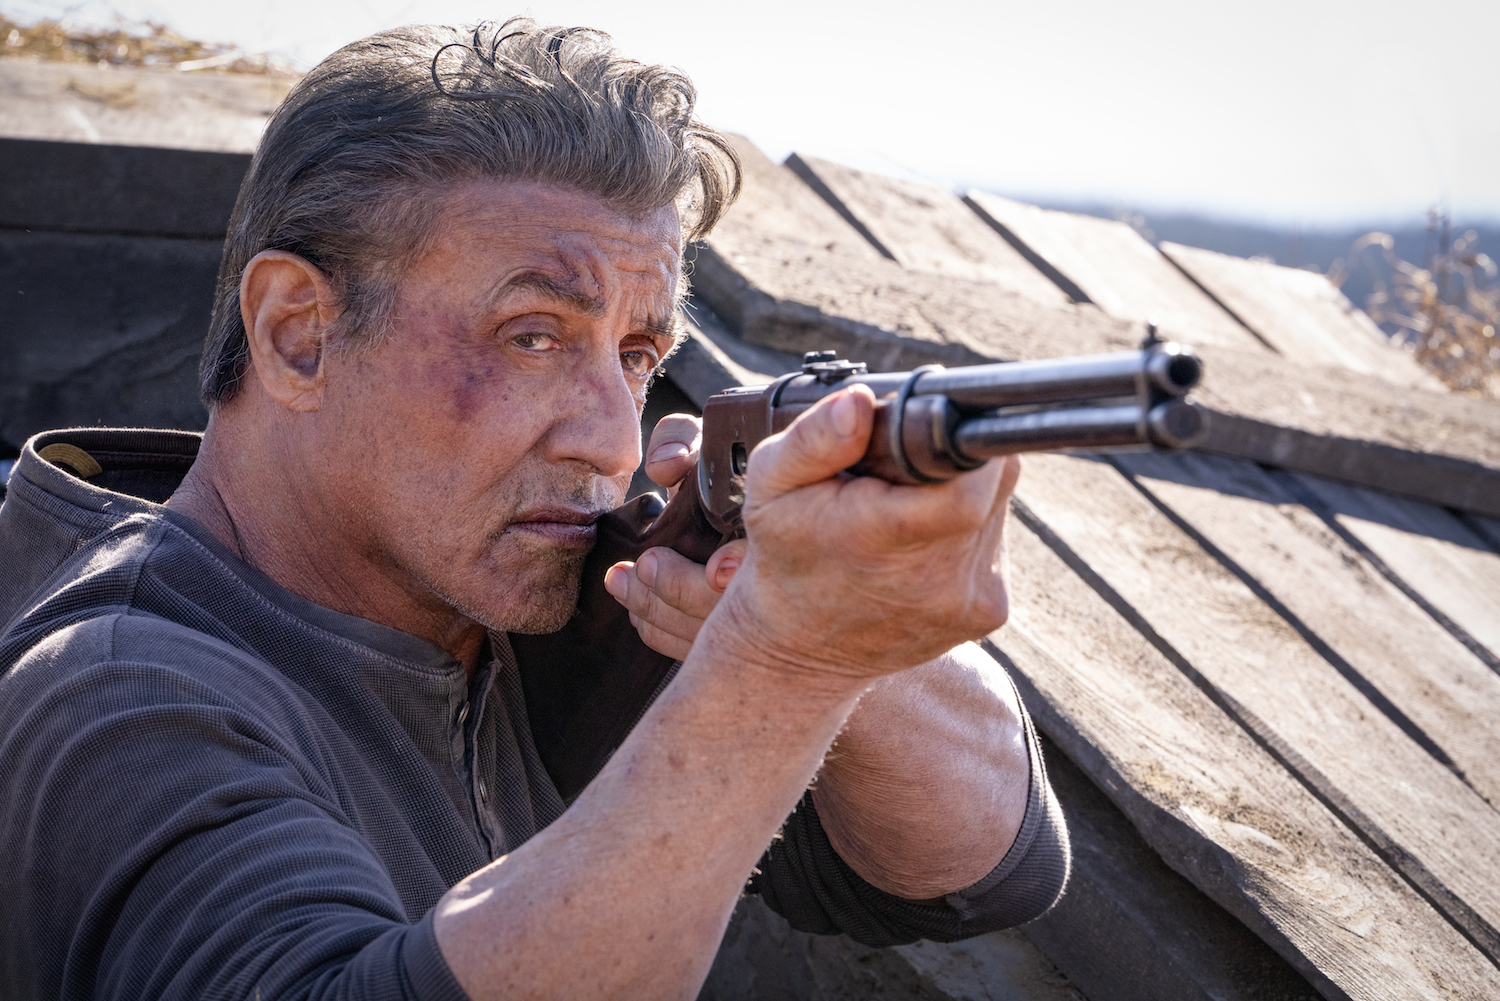 TRAILER: In 'Rambo: Last Blood,' Sylvester Stallone Fights to Save His Niece From a Mexican Drug Cartel